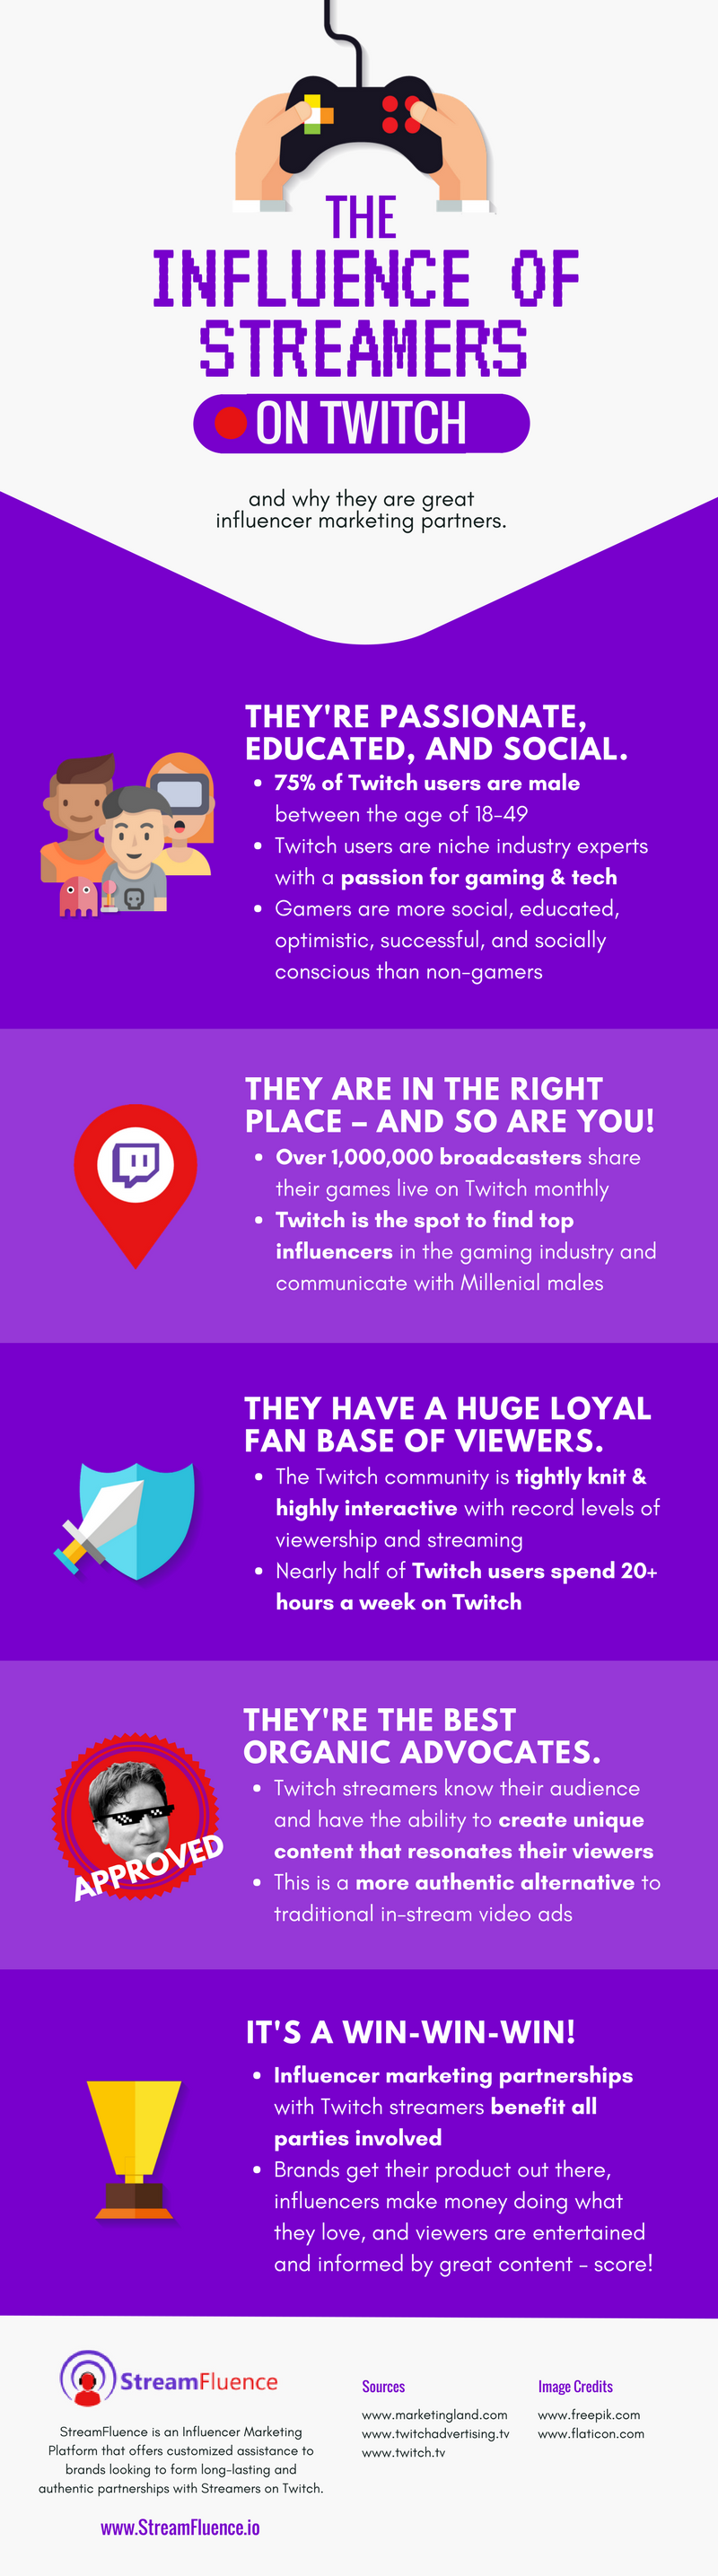 The Influence of Streamers on Twitch